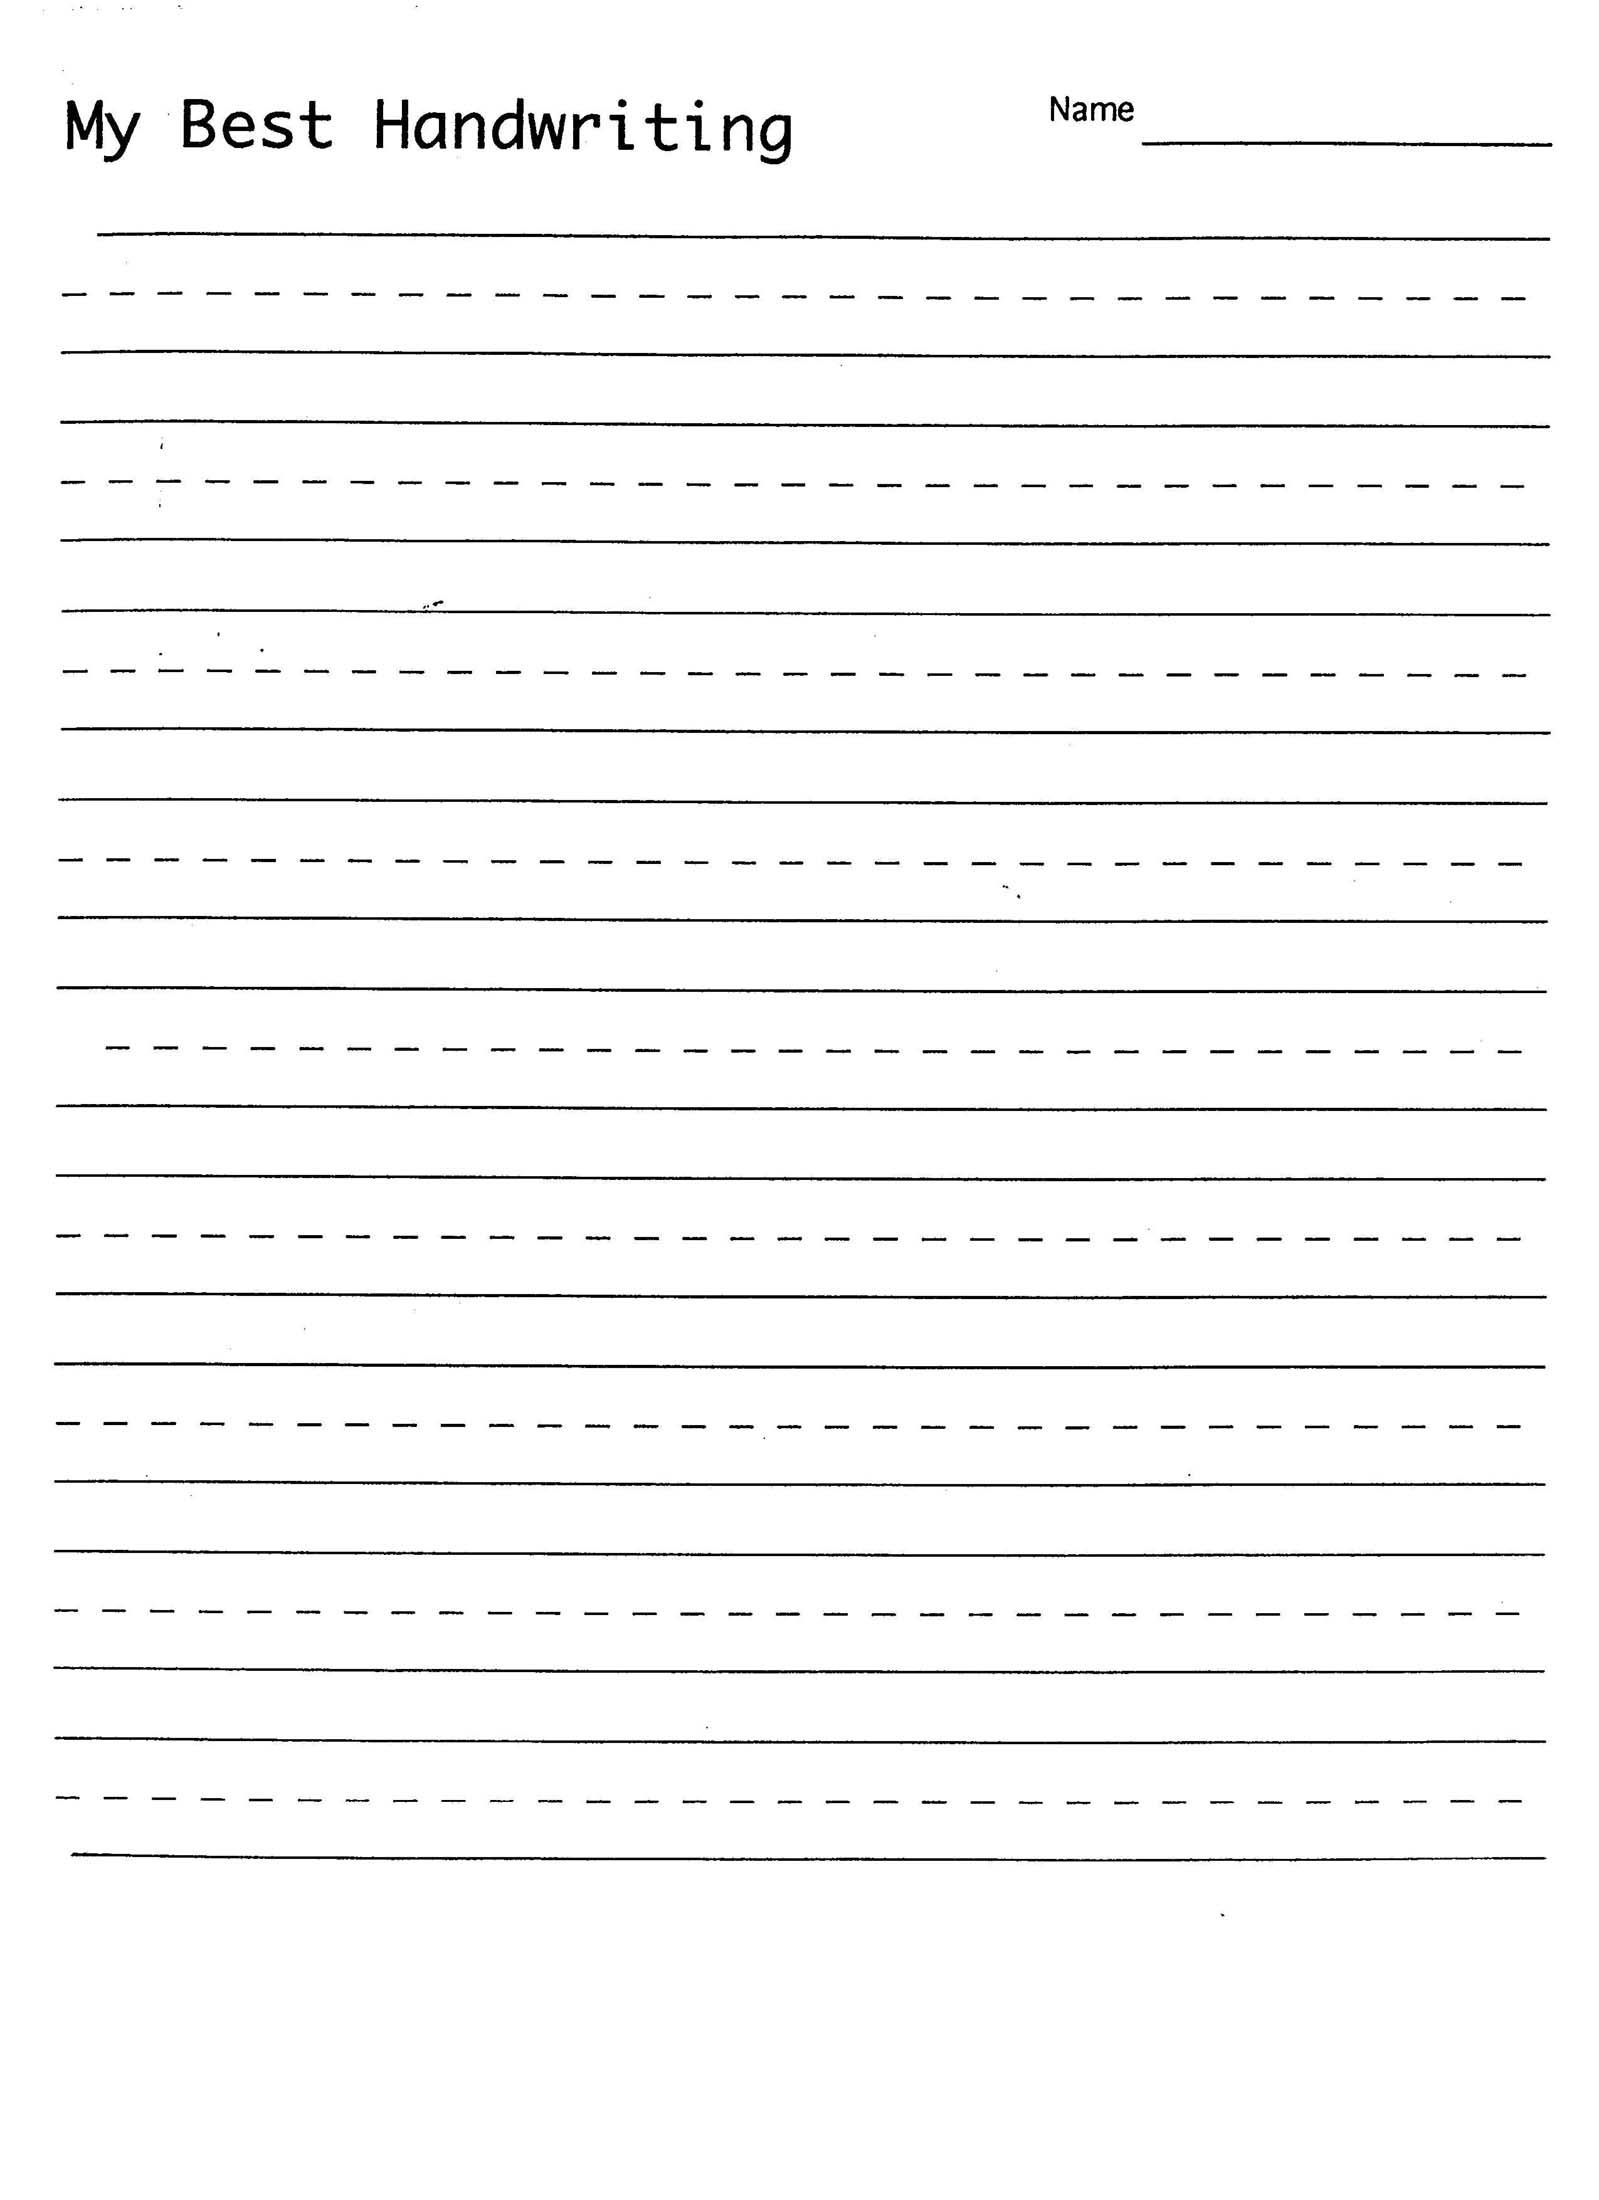 Handwriting Practice Sheet | Child Education | Handwriting Practice - Free Printable Handwriting Sheets For Kindergarten